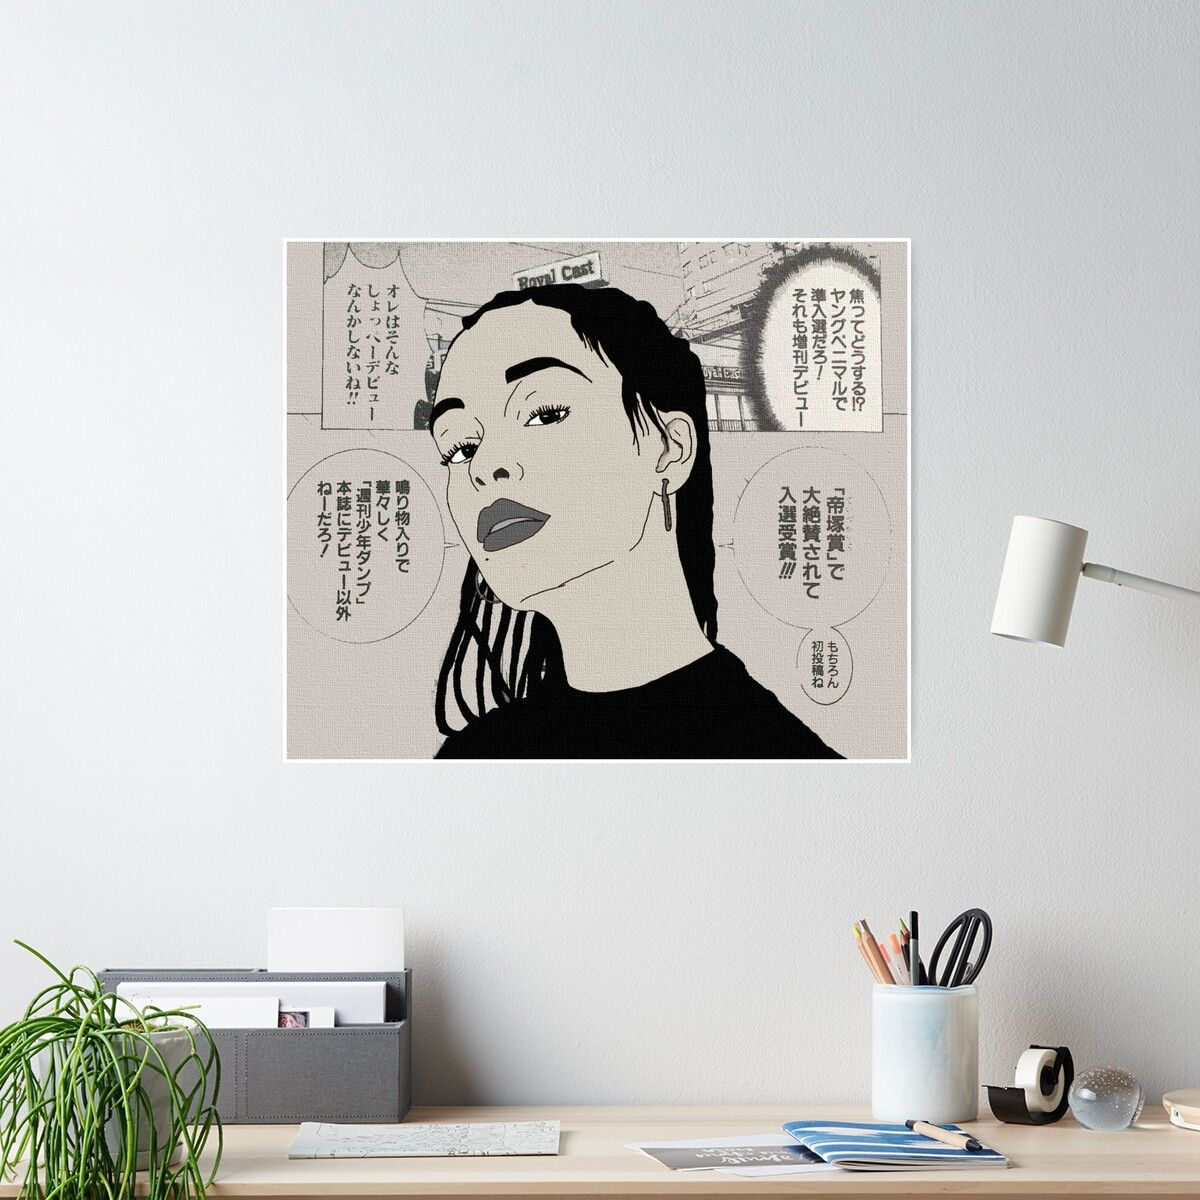 'Jorja Smith illustration' Poster by Goroudesign